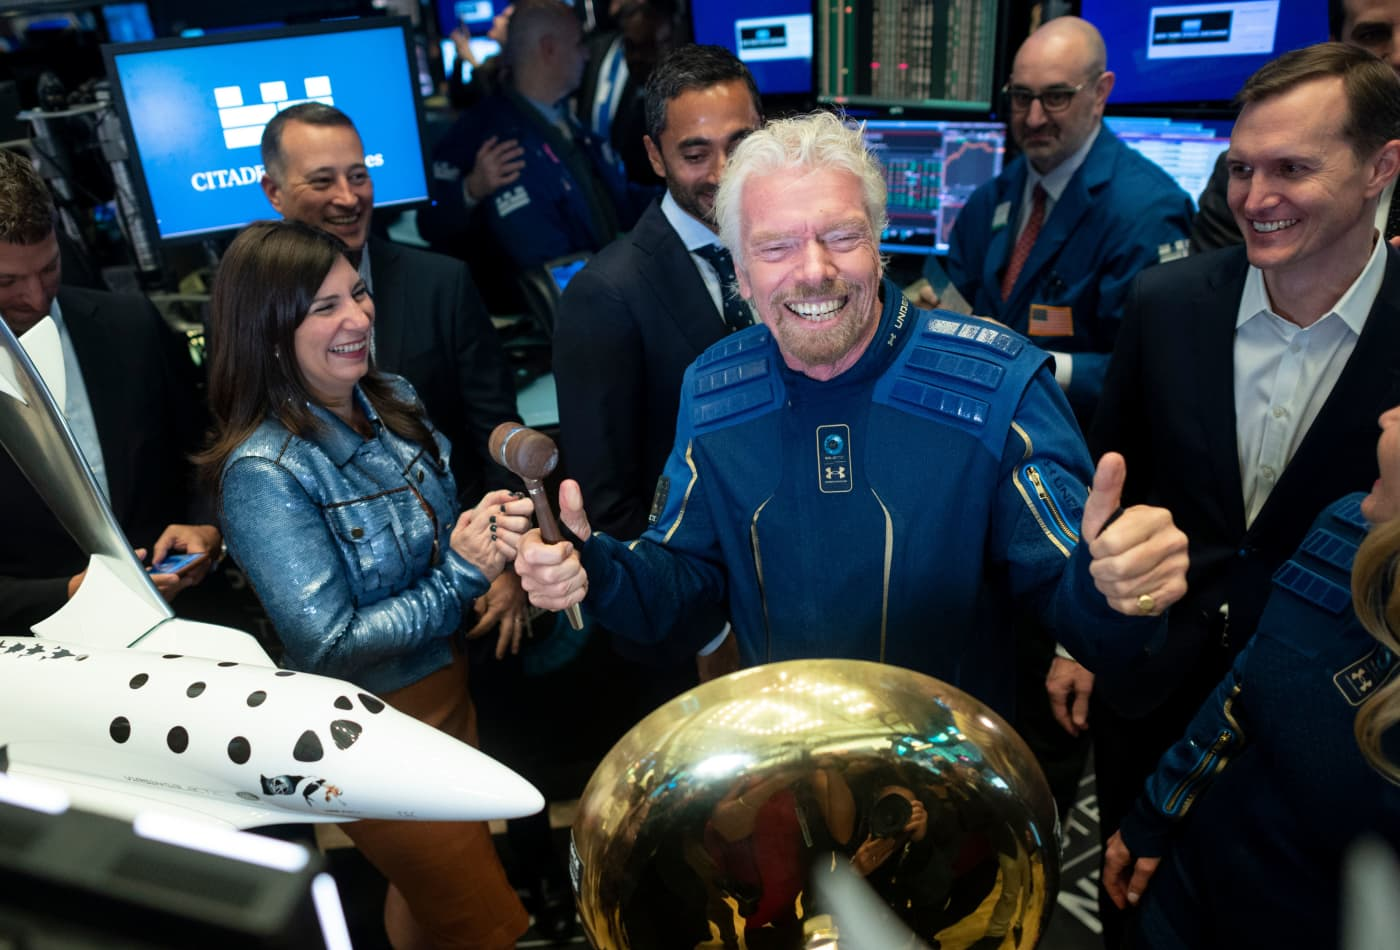 Space tourism is for the ultra rich, so why are Virgin Galactic, SpaceX and Blue Origin betting on it?